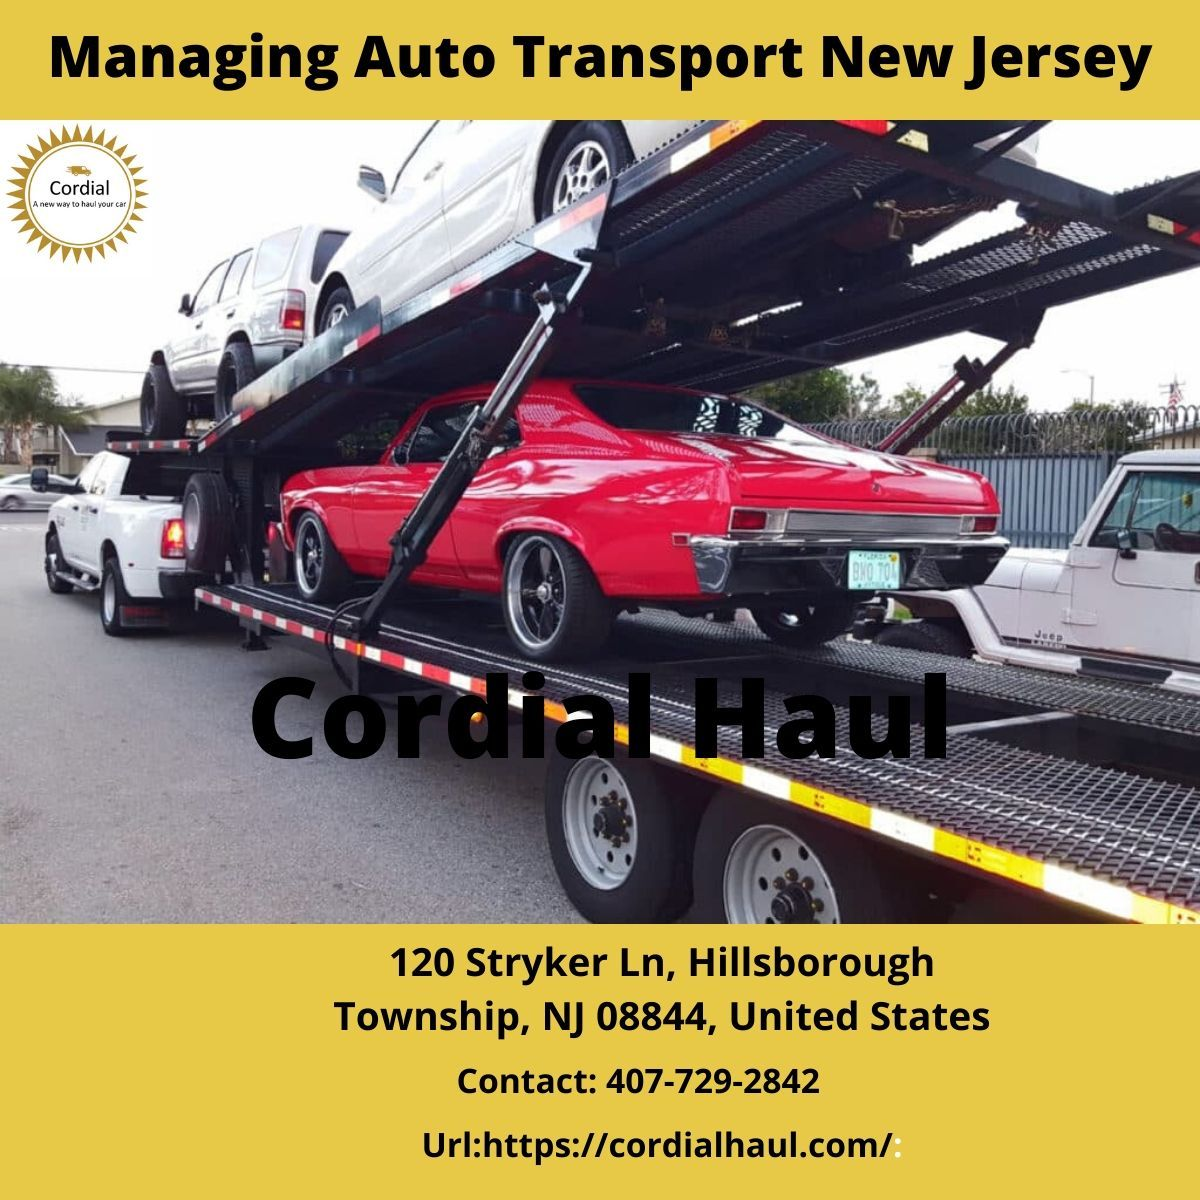 Car Hauling Services near me Wisconsin in 2020 New